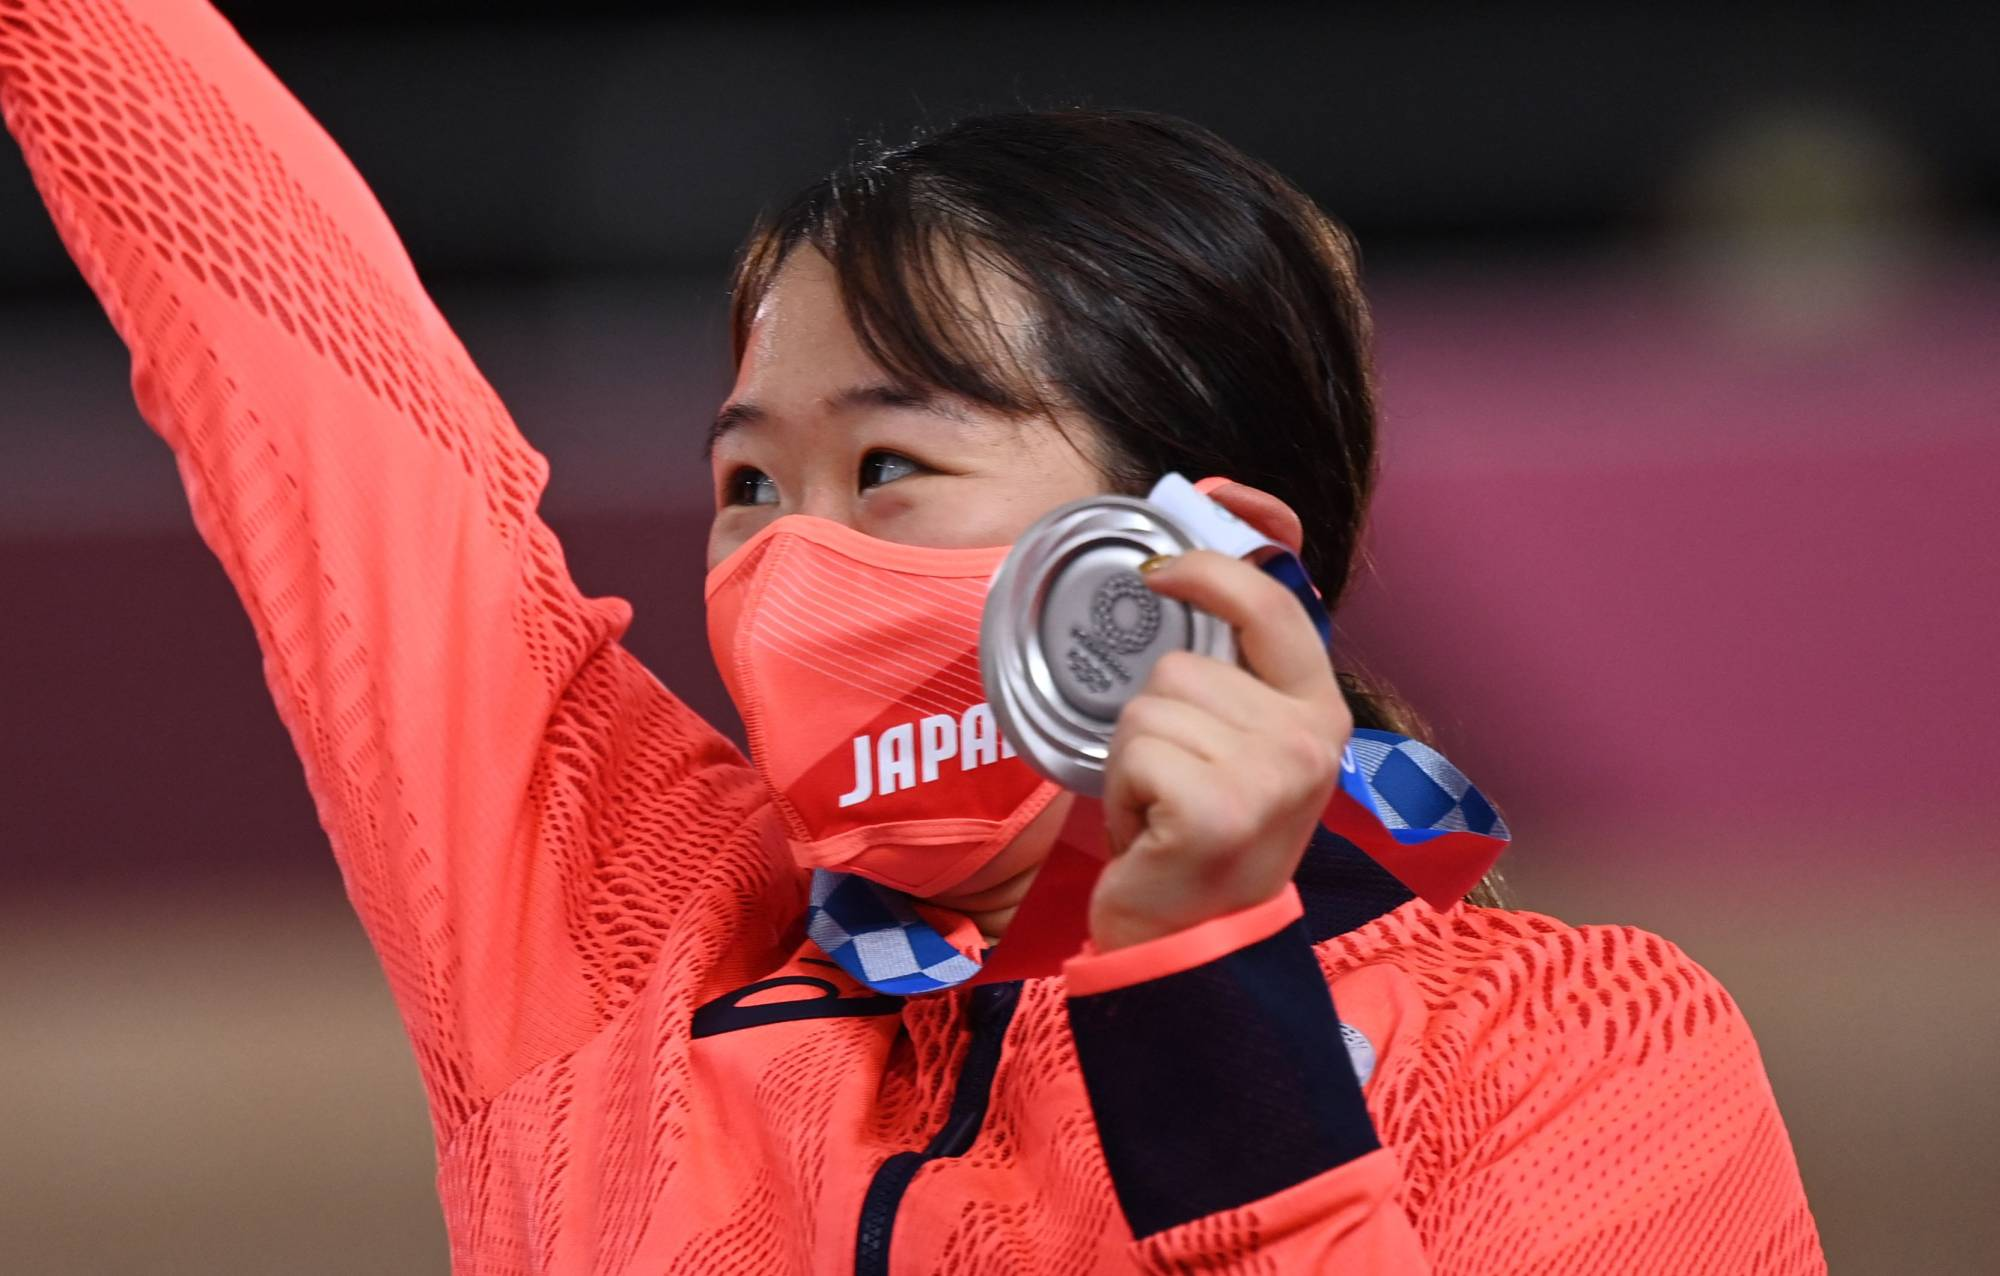 Silver medalist Yumi Kajihara of Japan on the podium after the women's track cycling omnium event at Izu Velodrome.  | AFP-JIJI